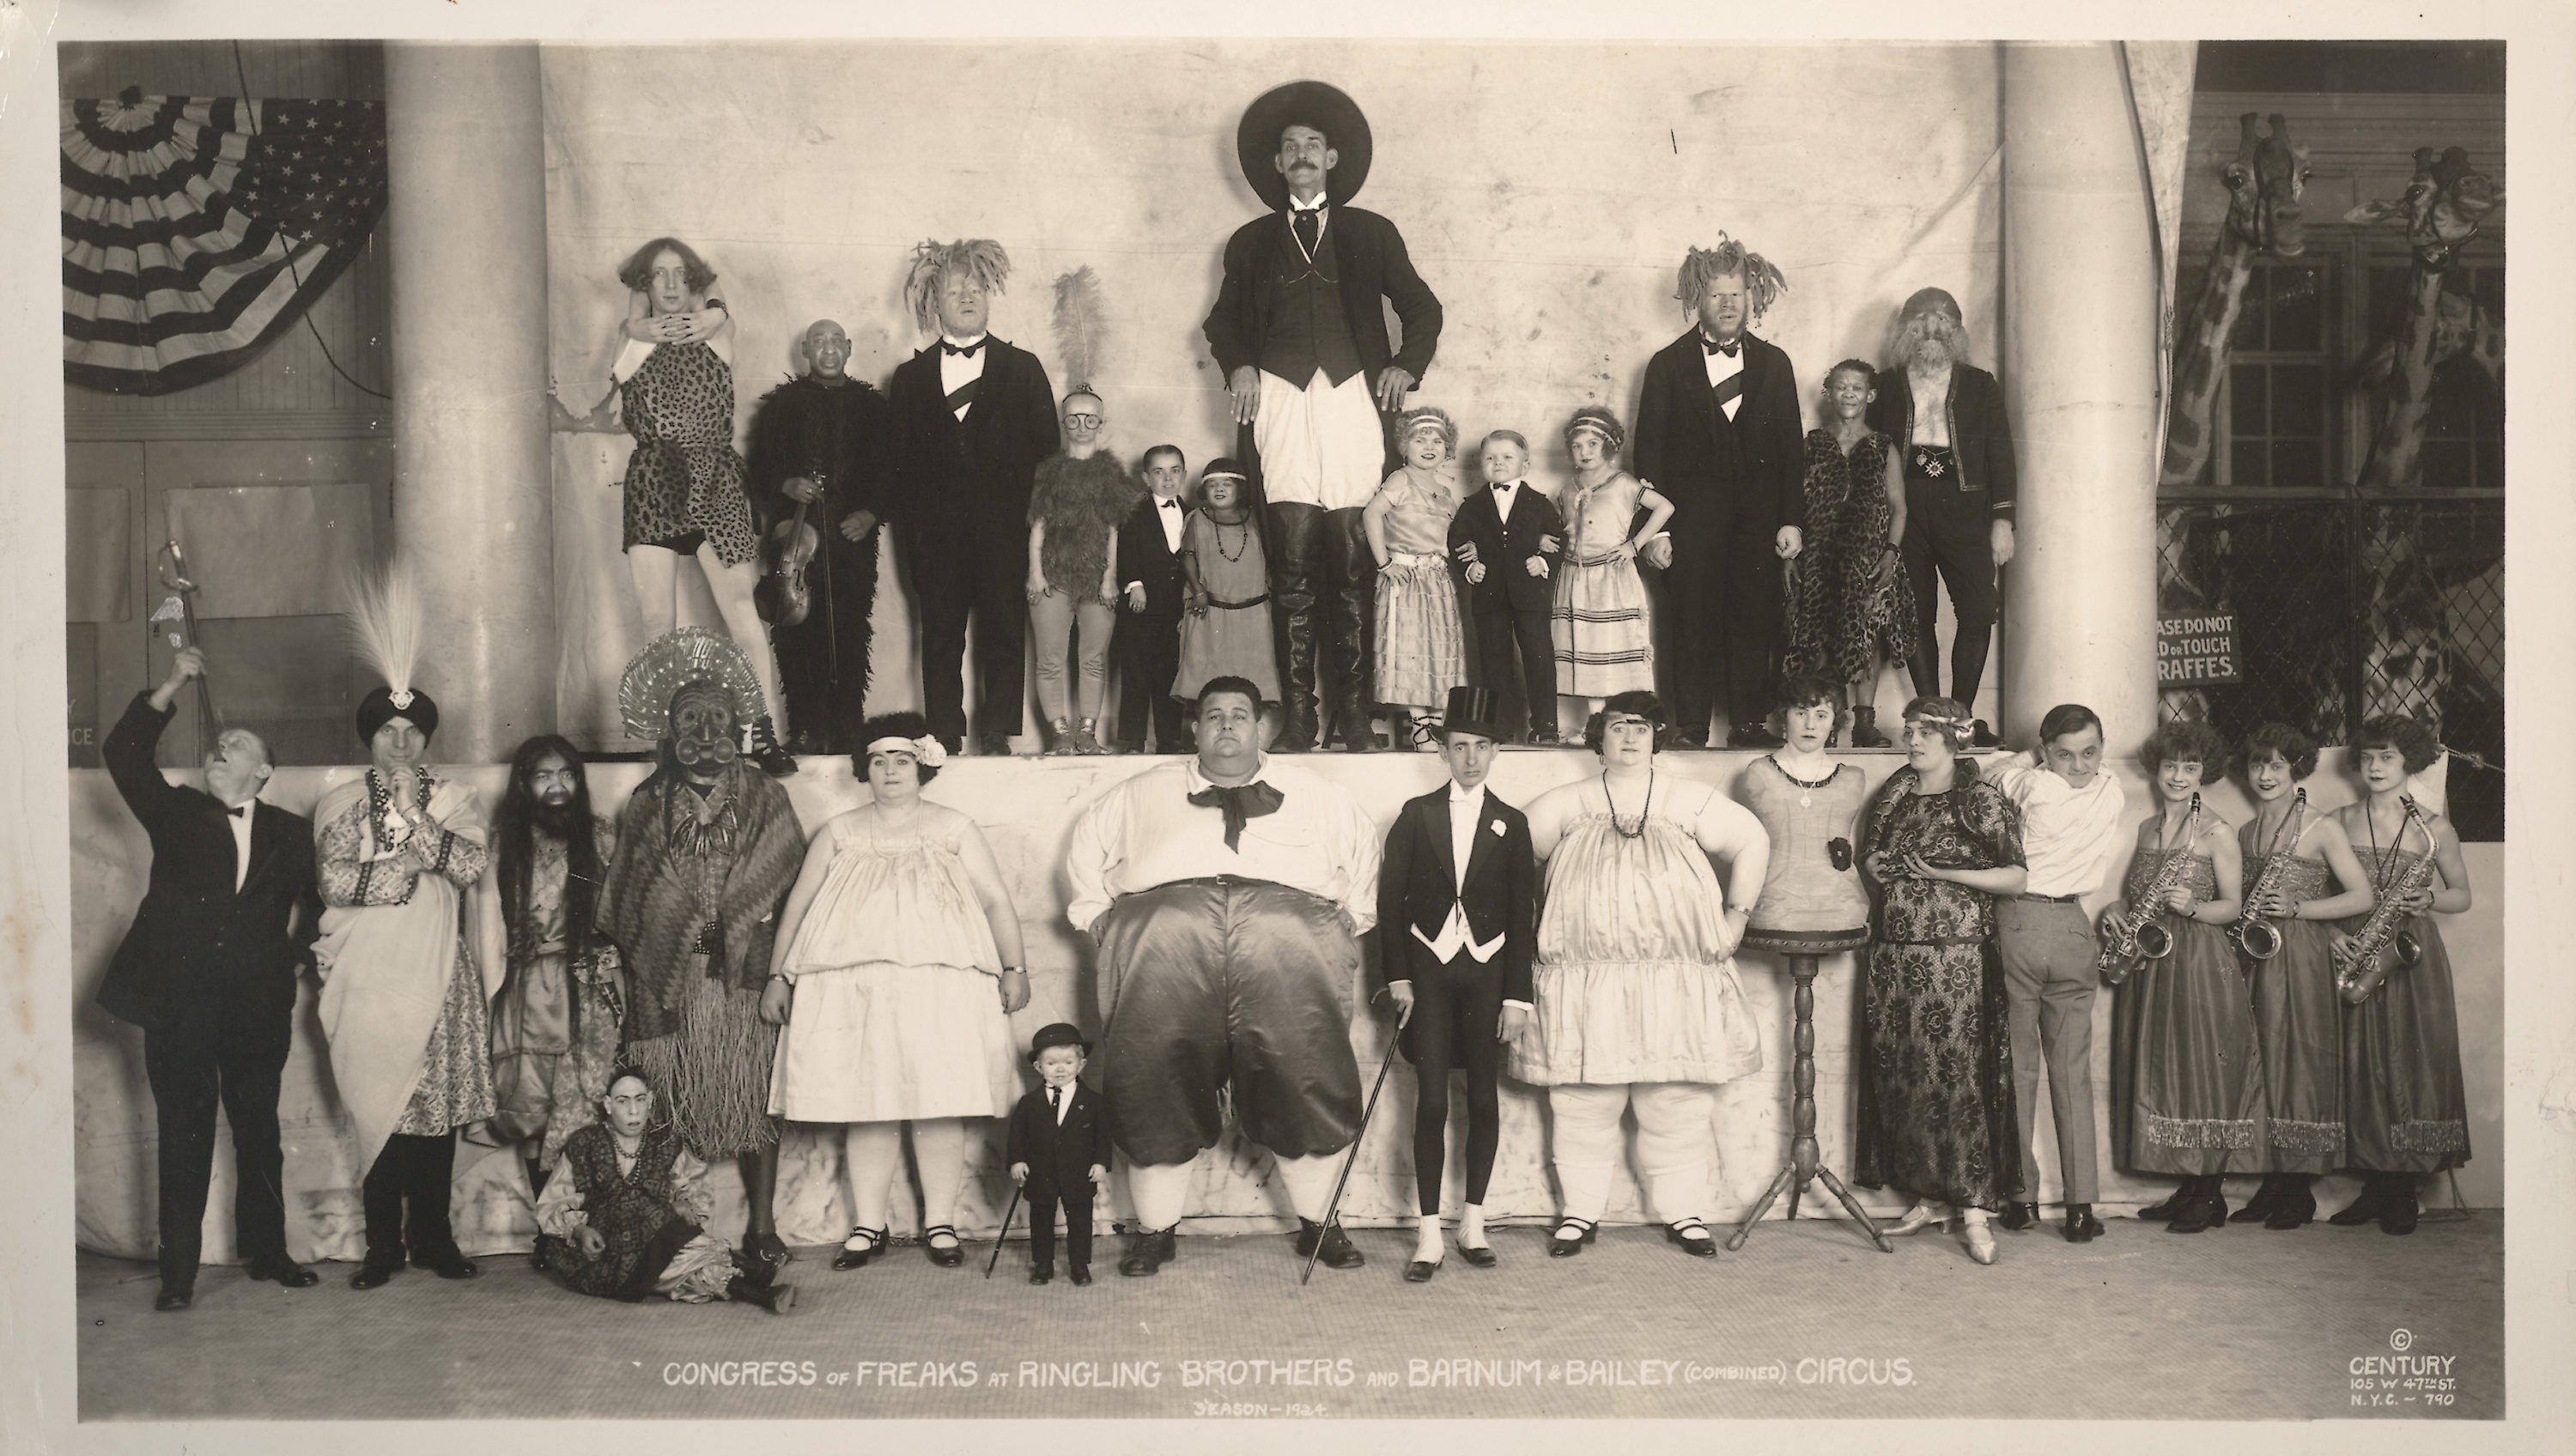 Photograph courtesy of the John and Mable Ringling Museum of Art Tibbals Collection